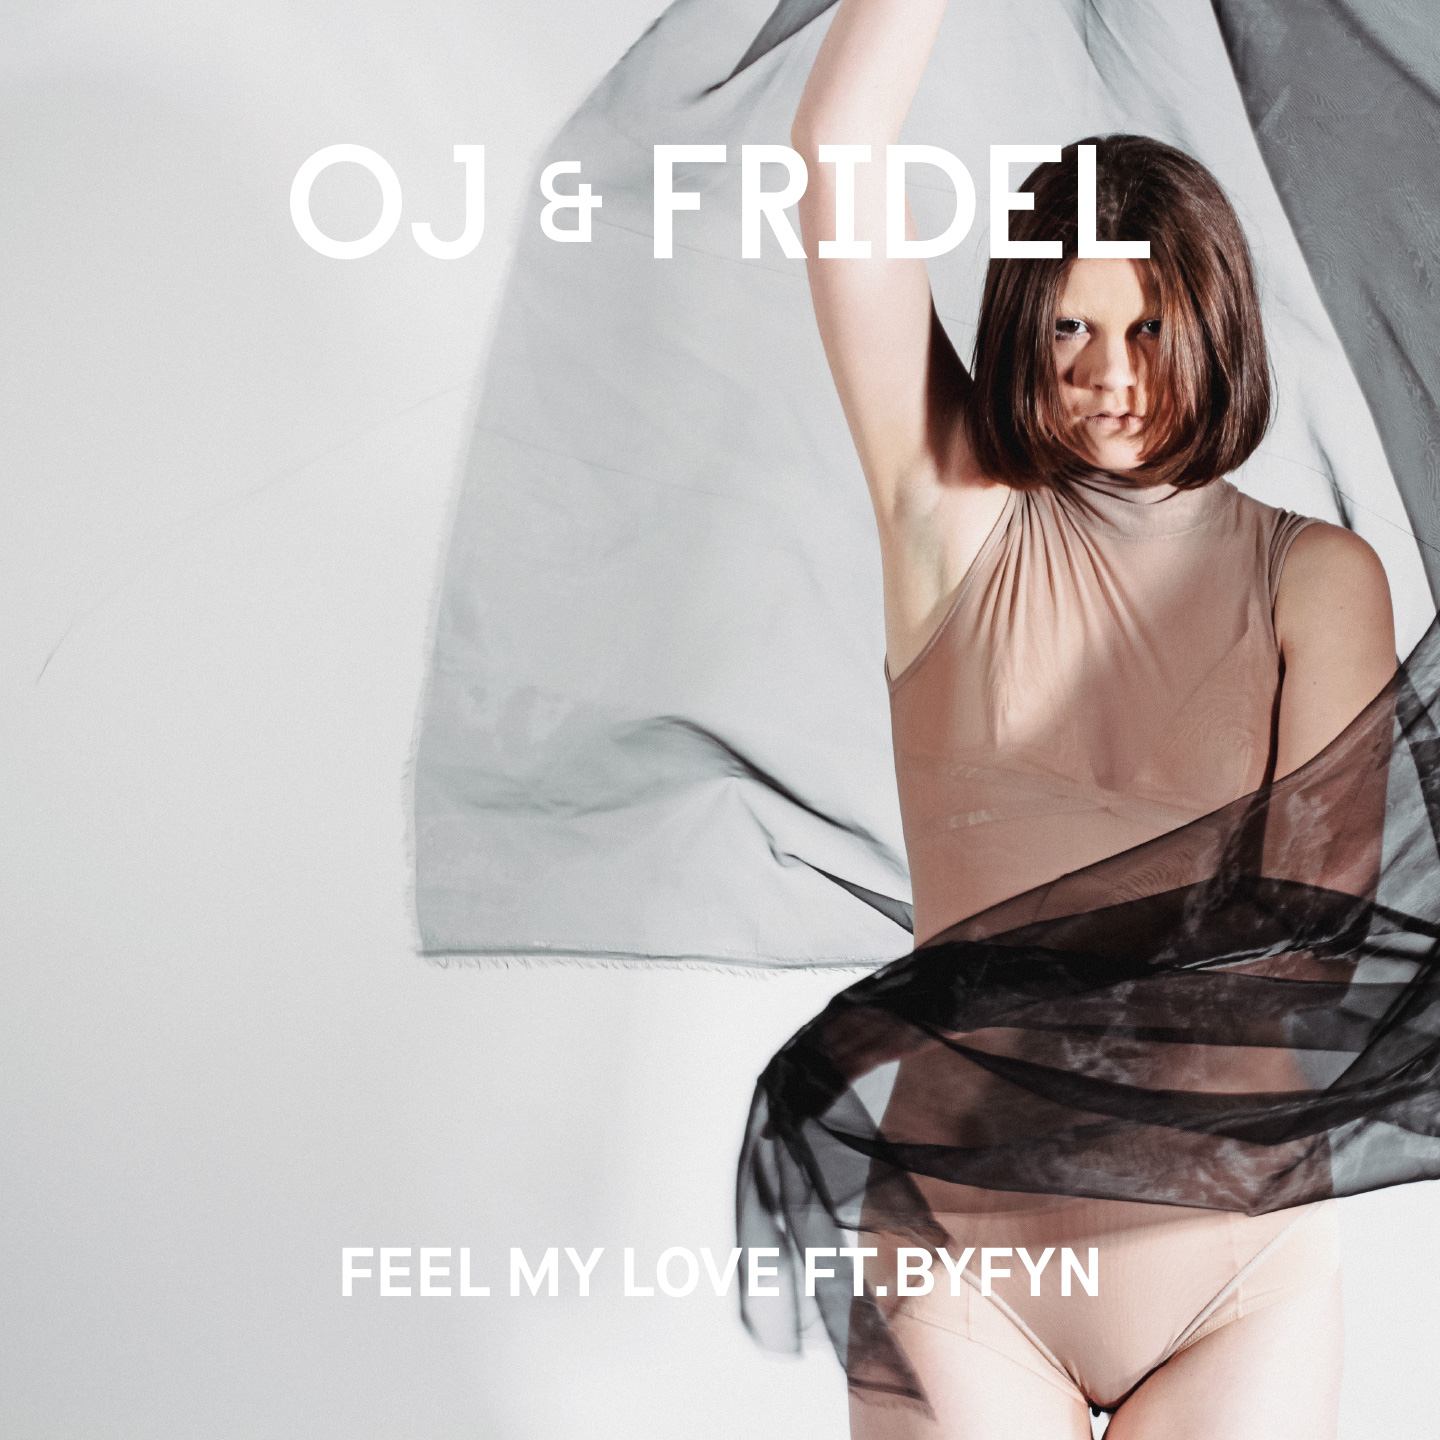 Feel My Love ft. Byfyn